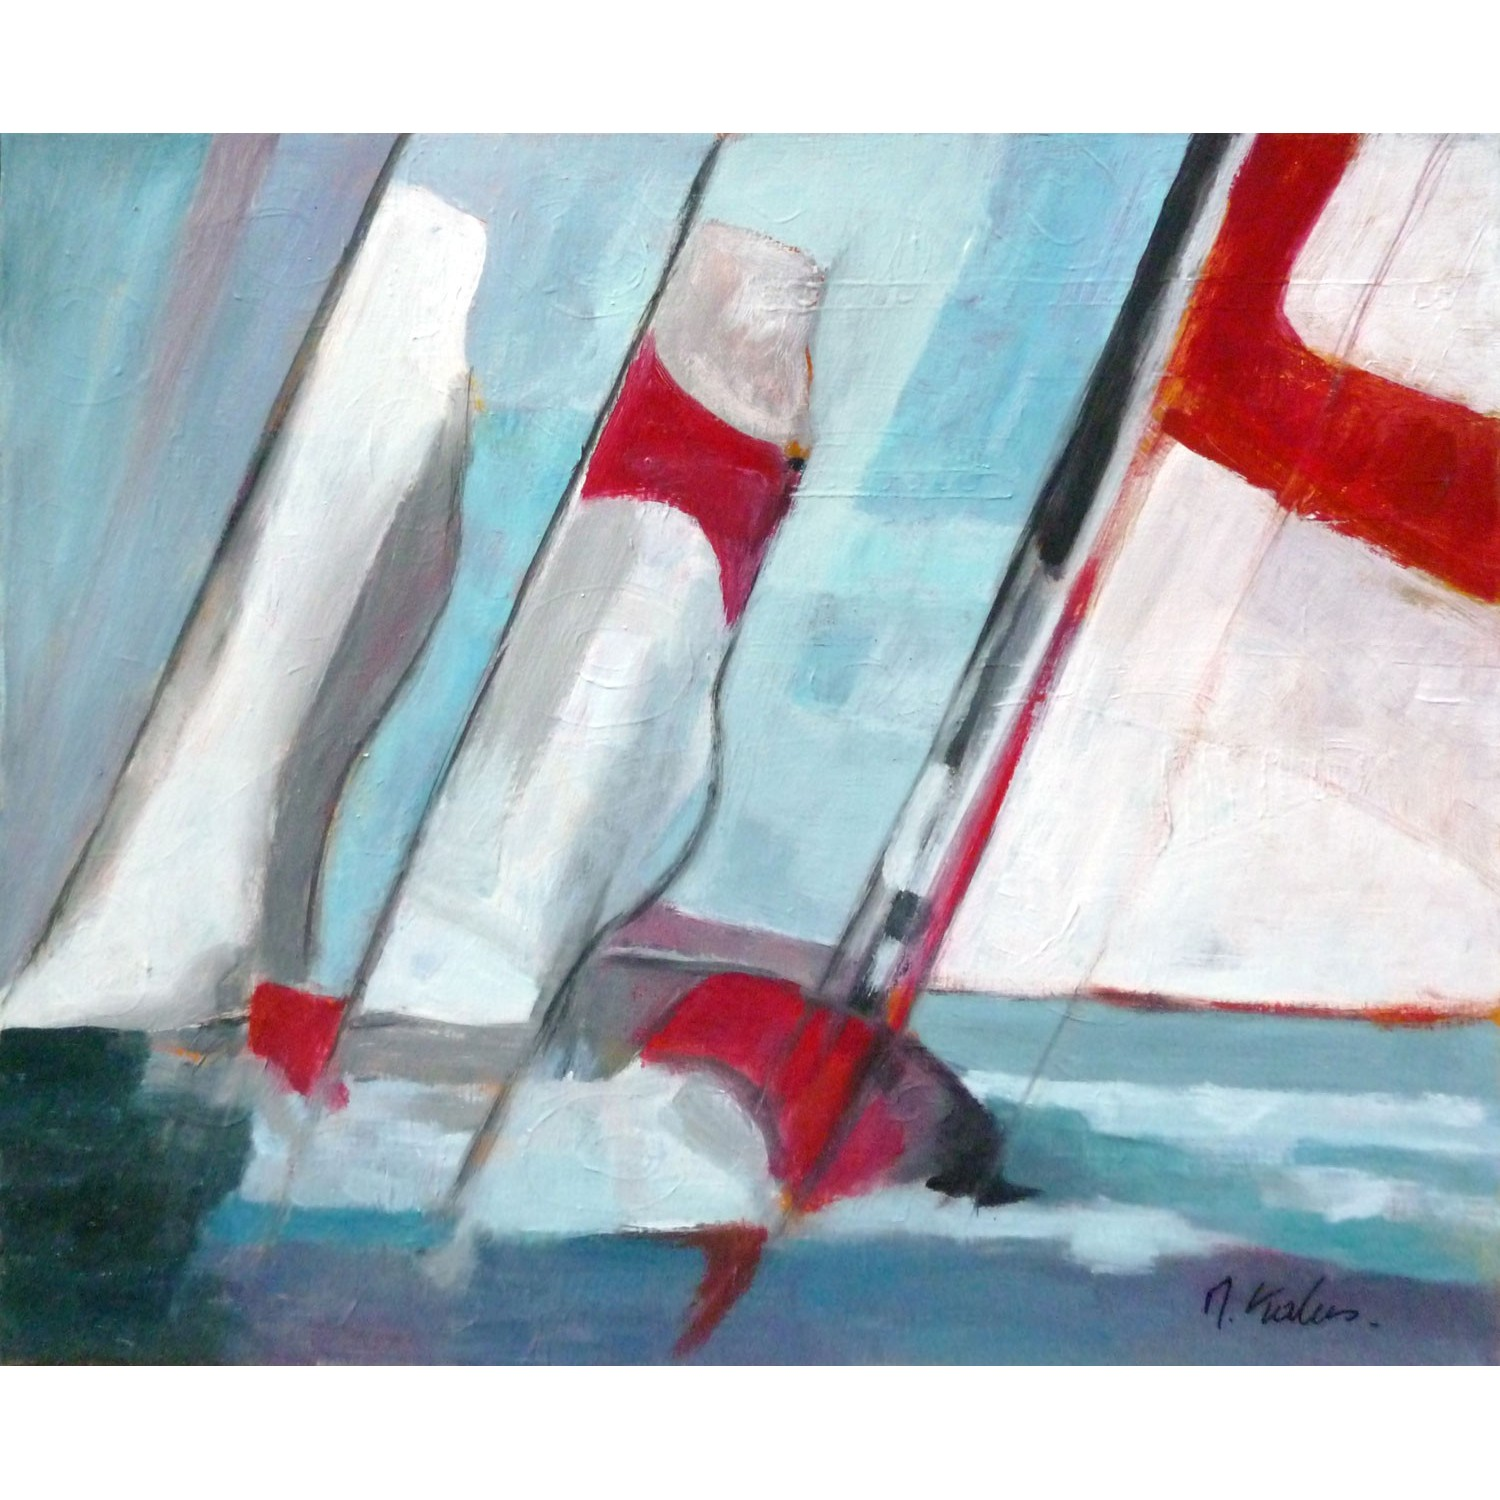 SERIE VOILE 5